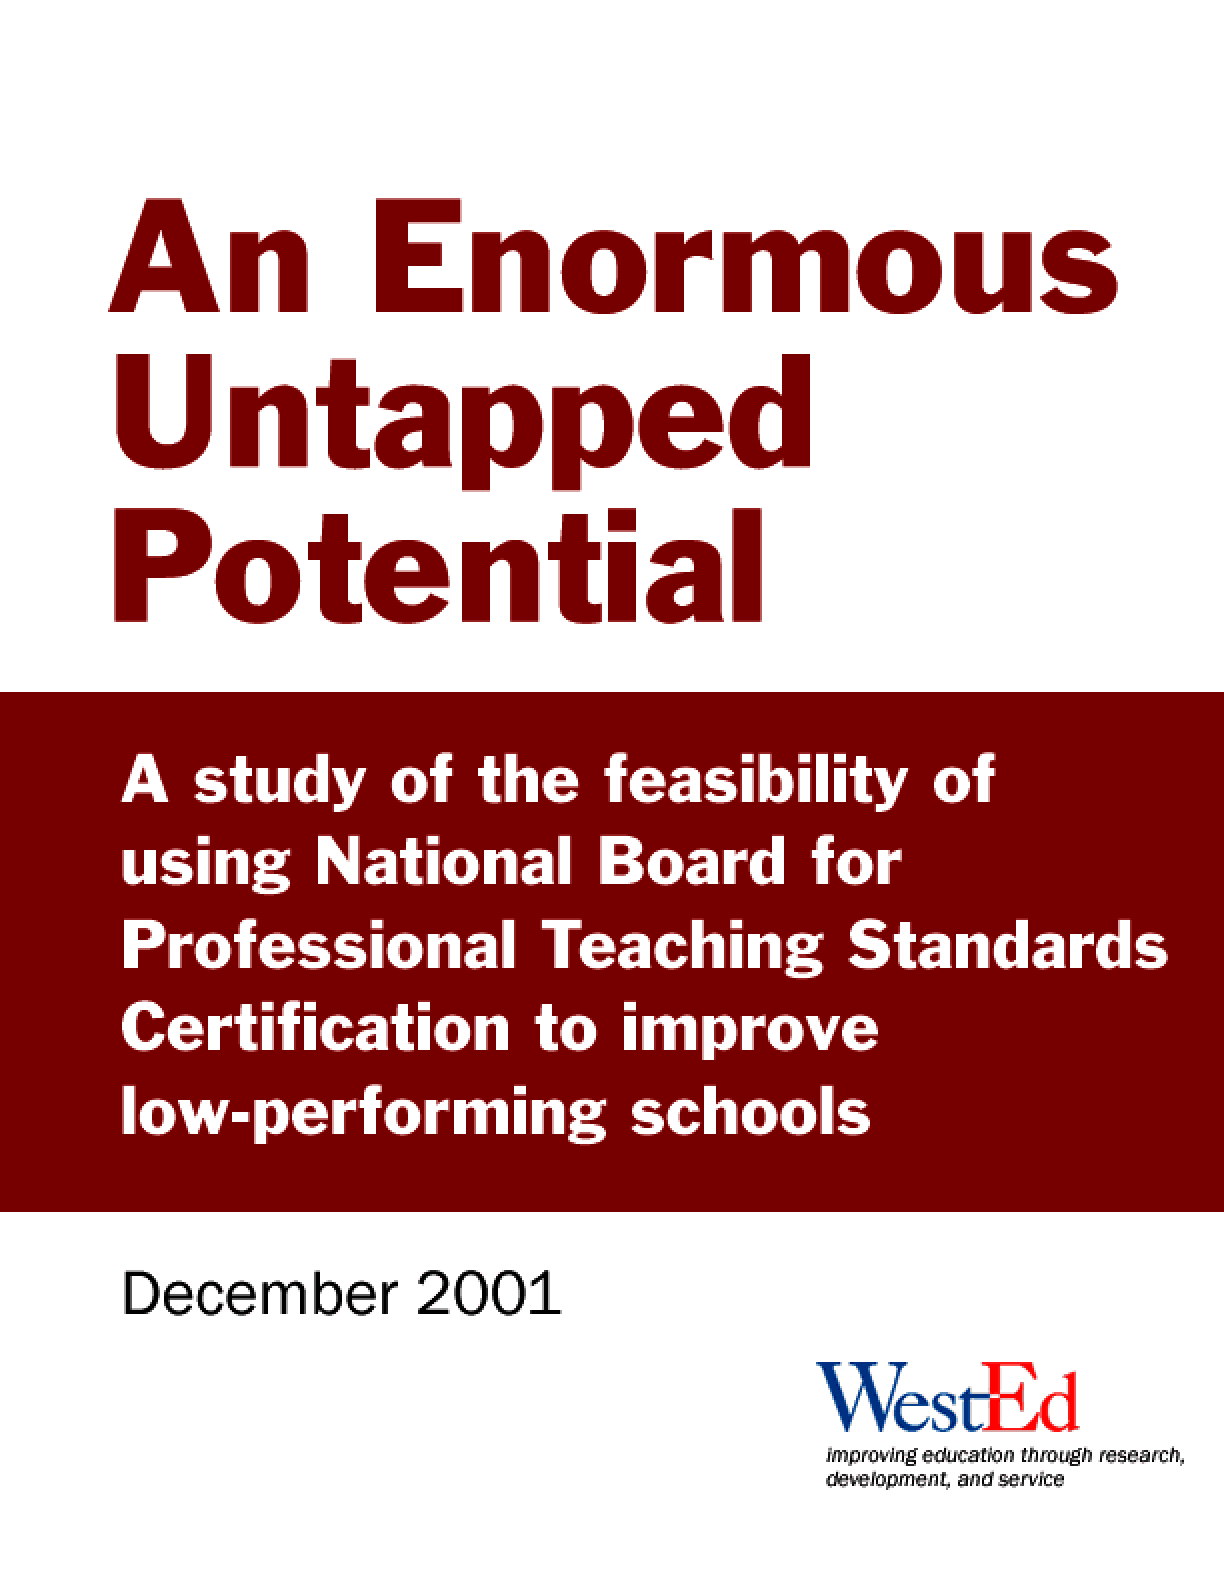 An Enormous Untapped Potential: A Study of the Feasibility of Using National Board for Professional Teaching Standards Certification